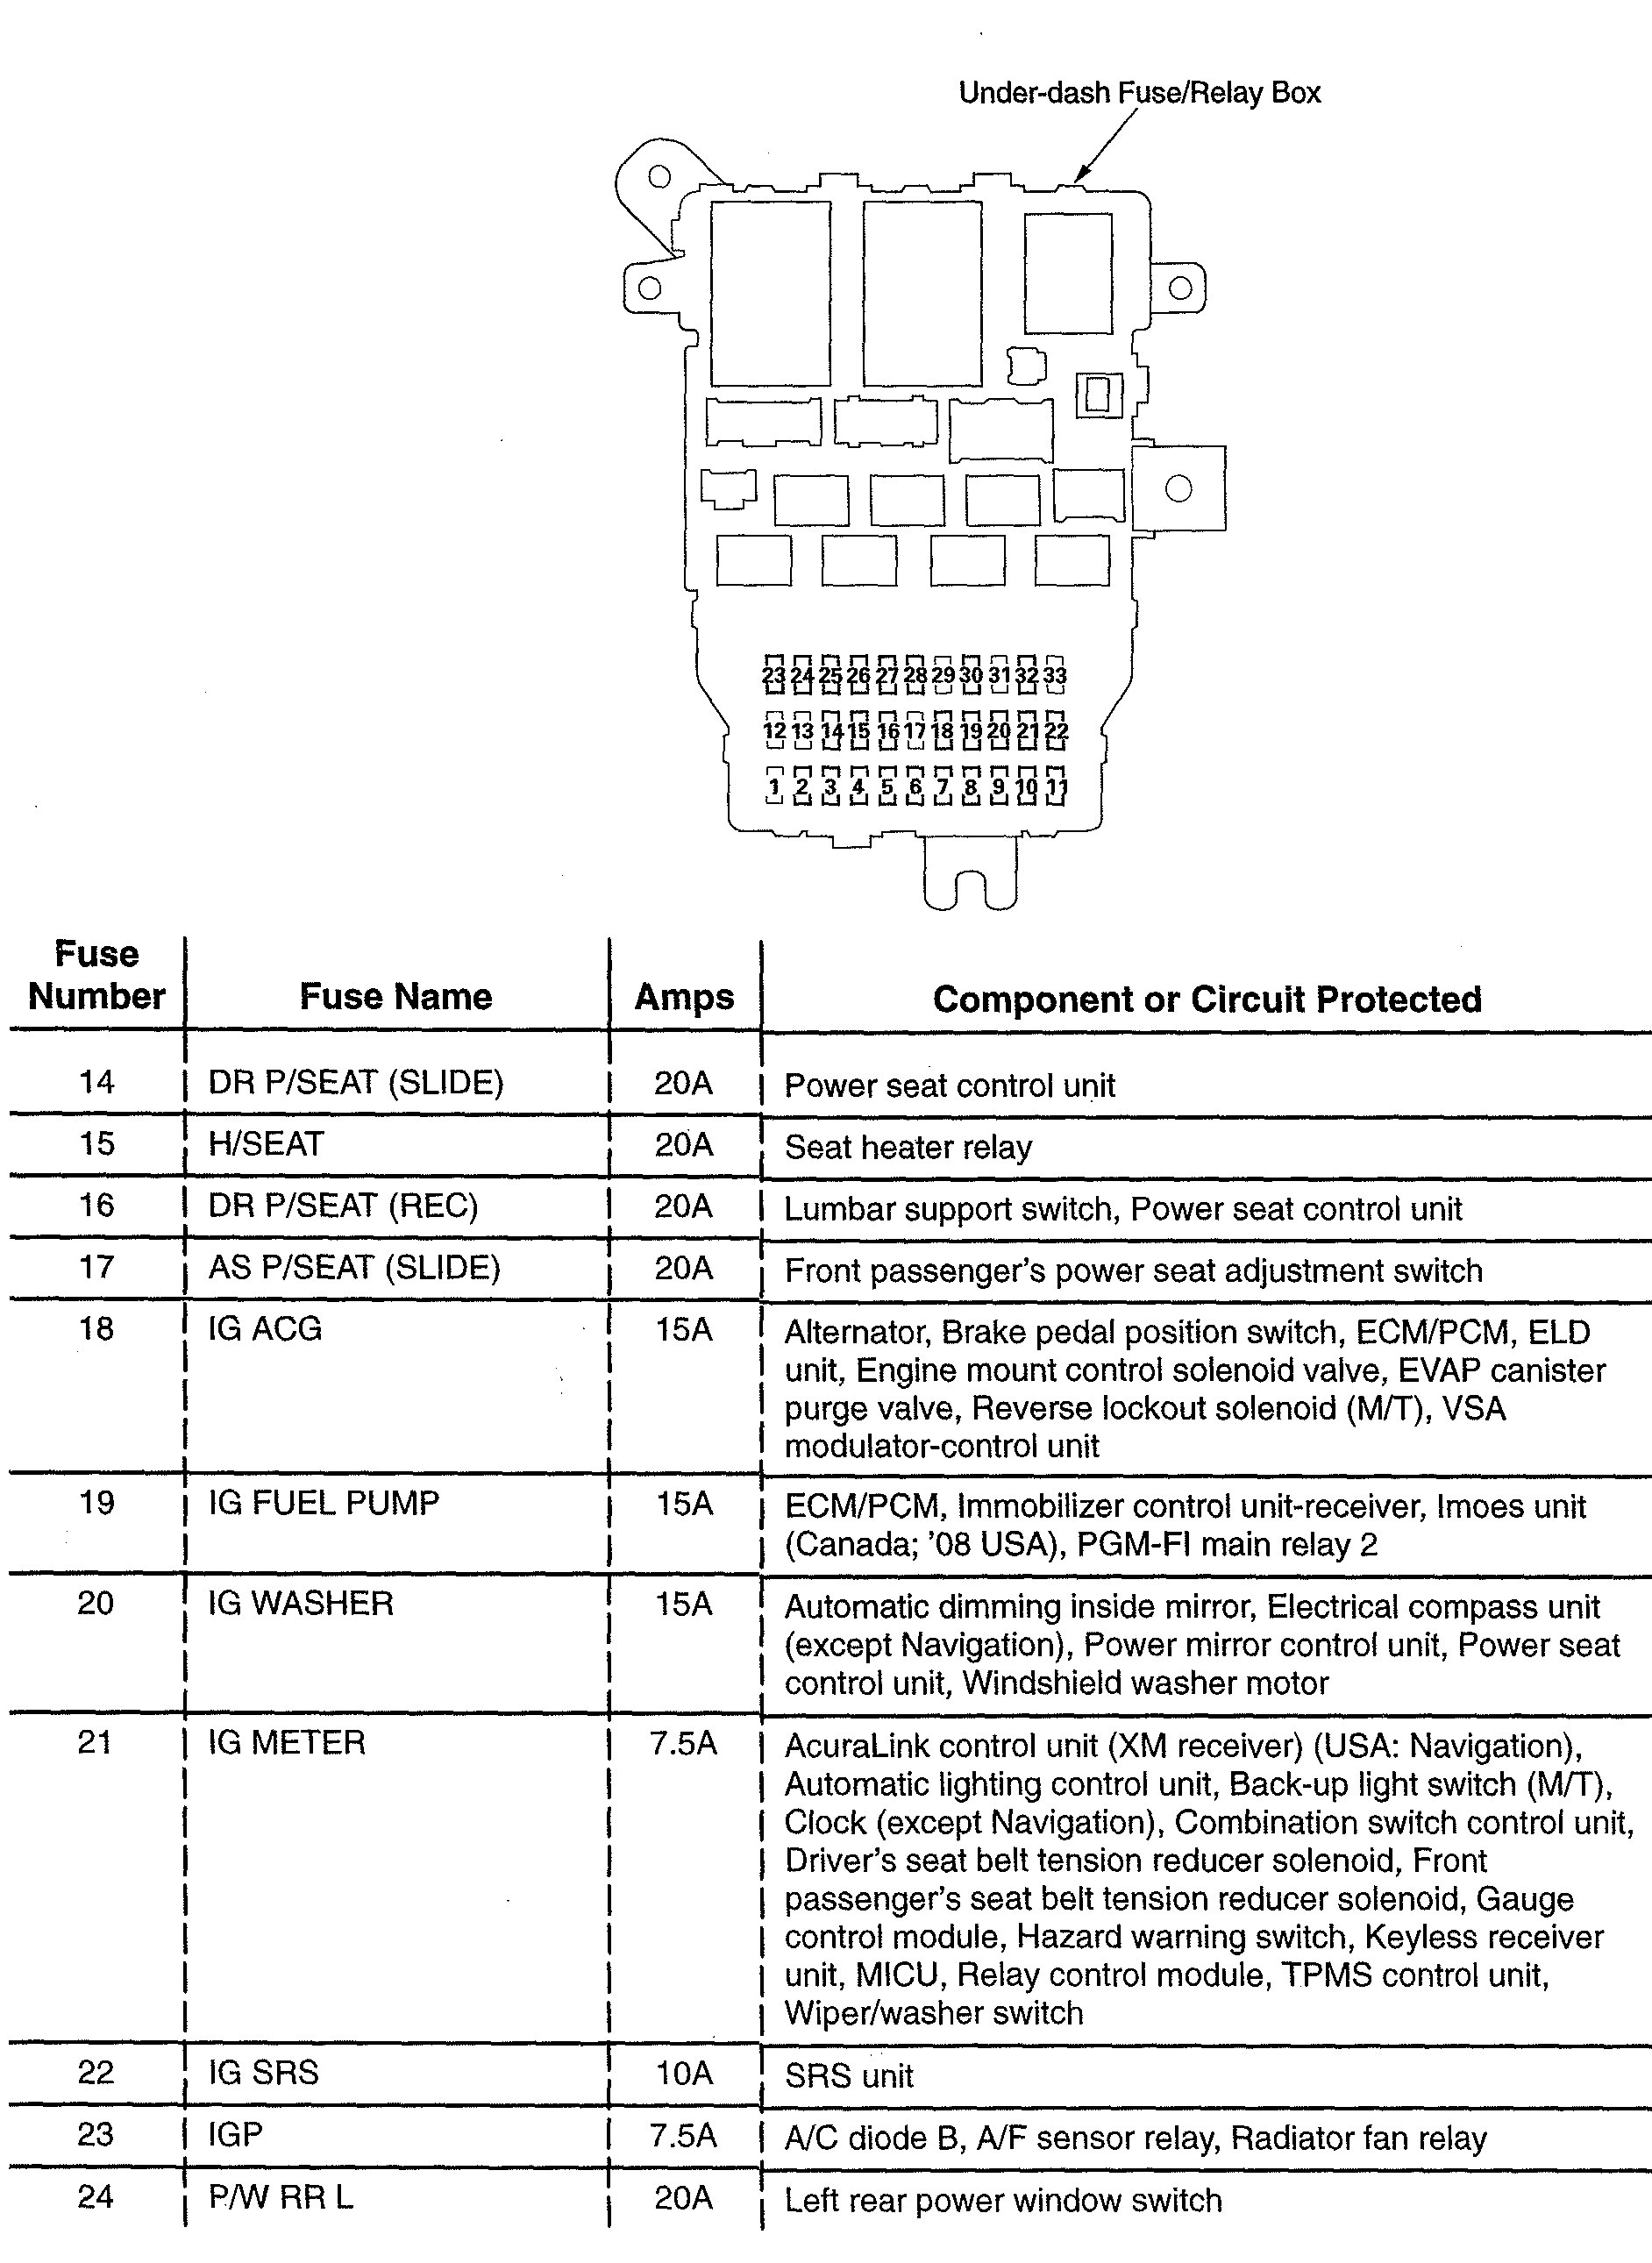 Fuse Box In Acura Tl Wiring Diagram Libraries 2006 Grand Prix Third Level99 Subcon